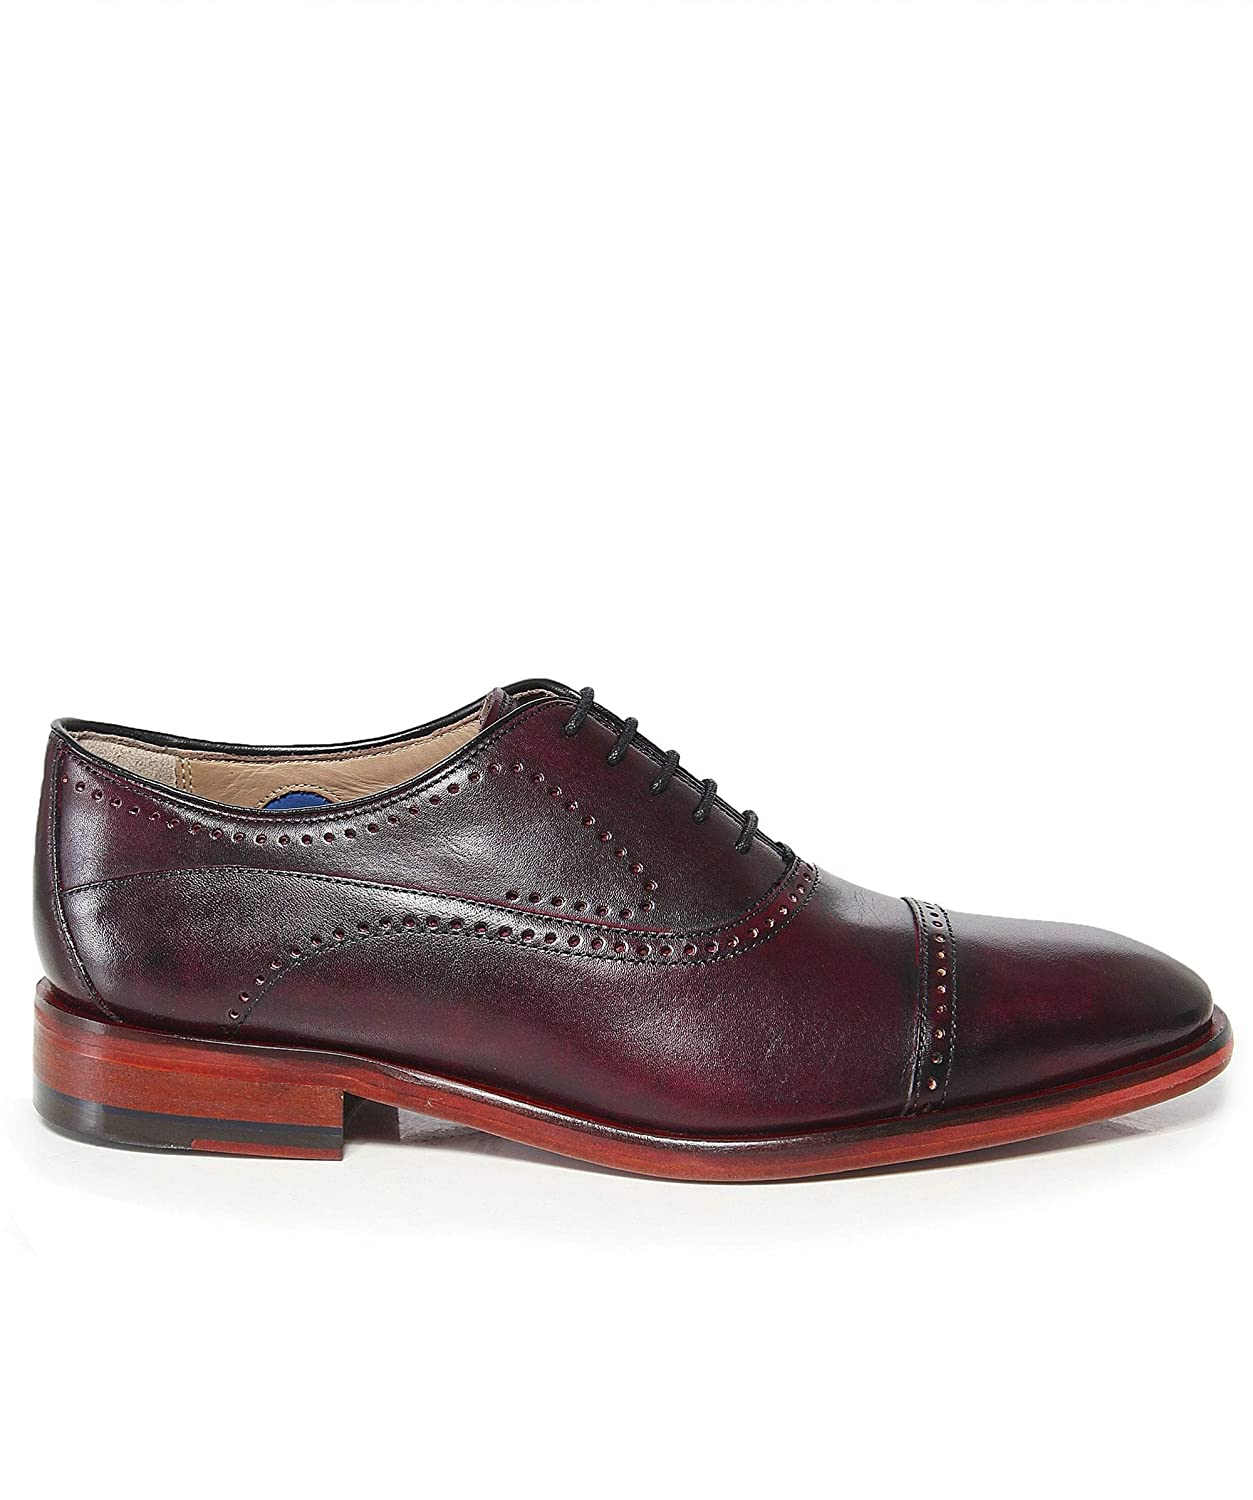 Oliver Sweeney Mens Leather Mallory Oxford Shoes Burgundy